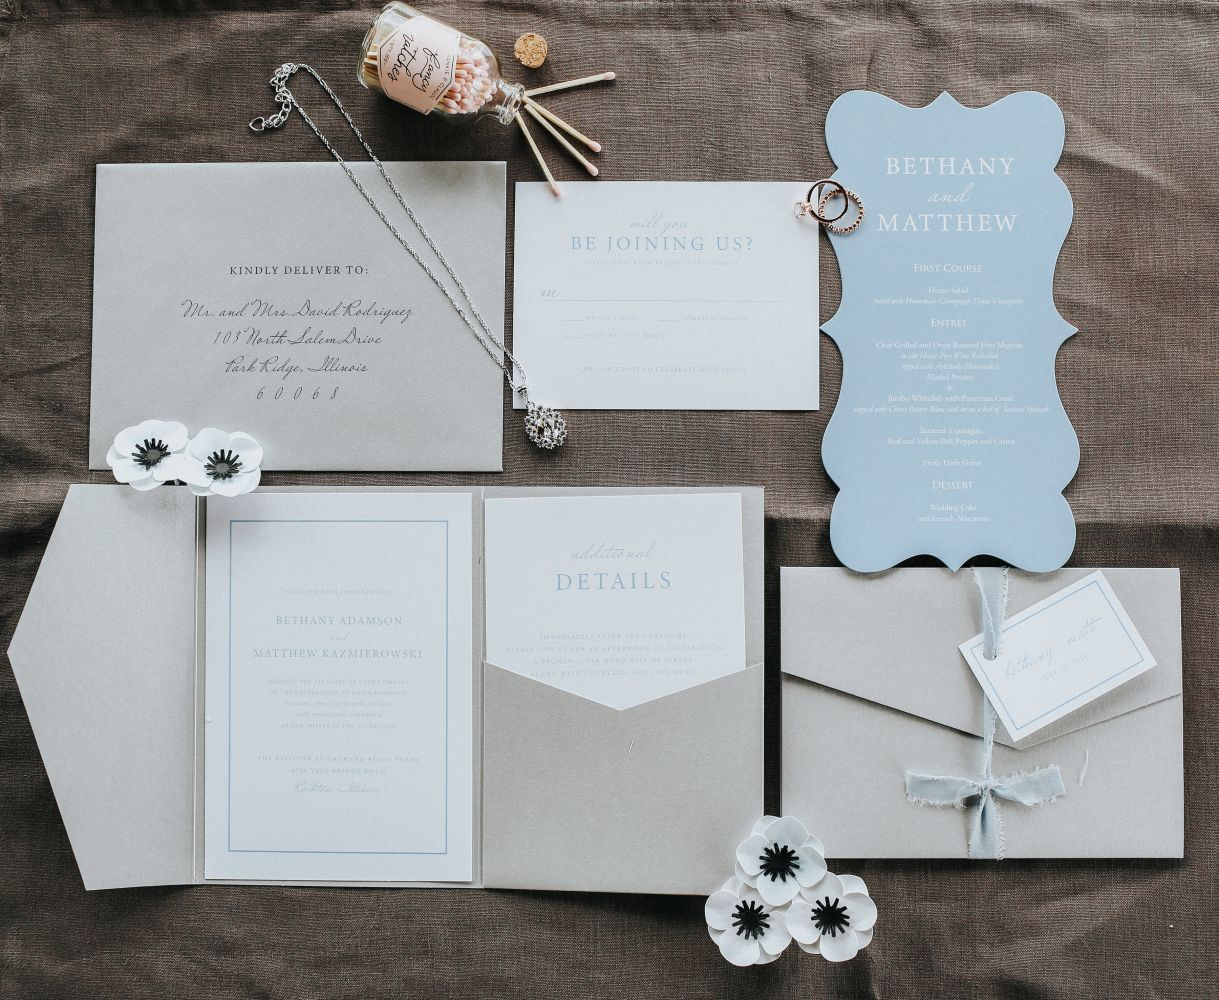 Indianapolis Carmel Zionsville Best Wedding Invitation Shop